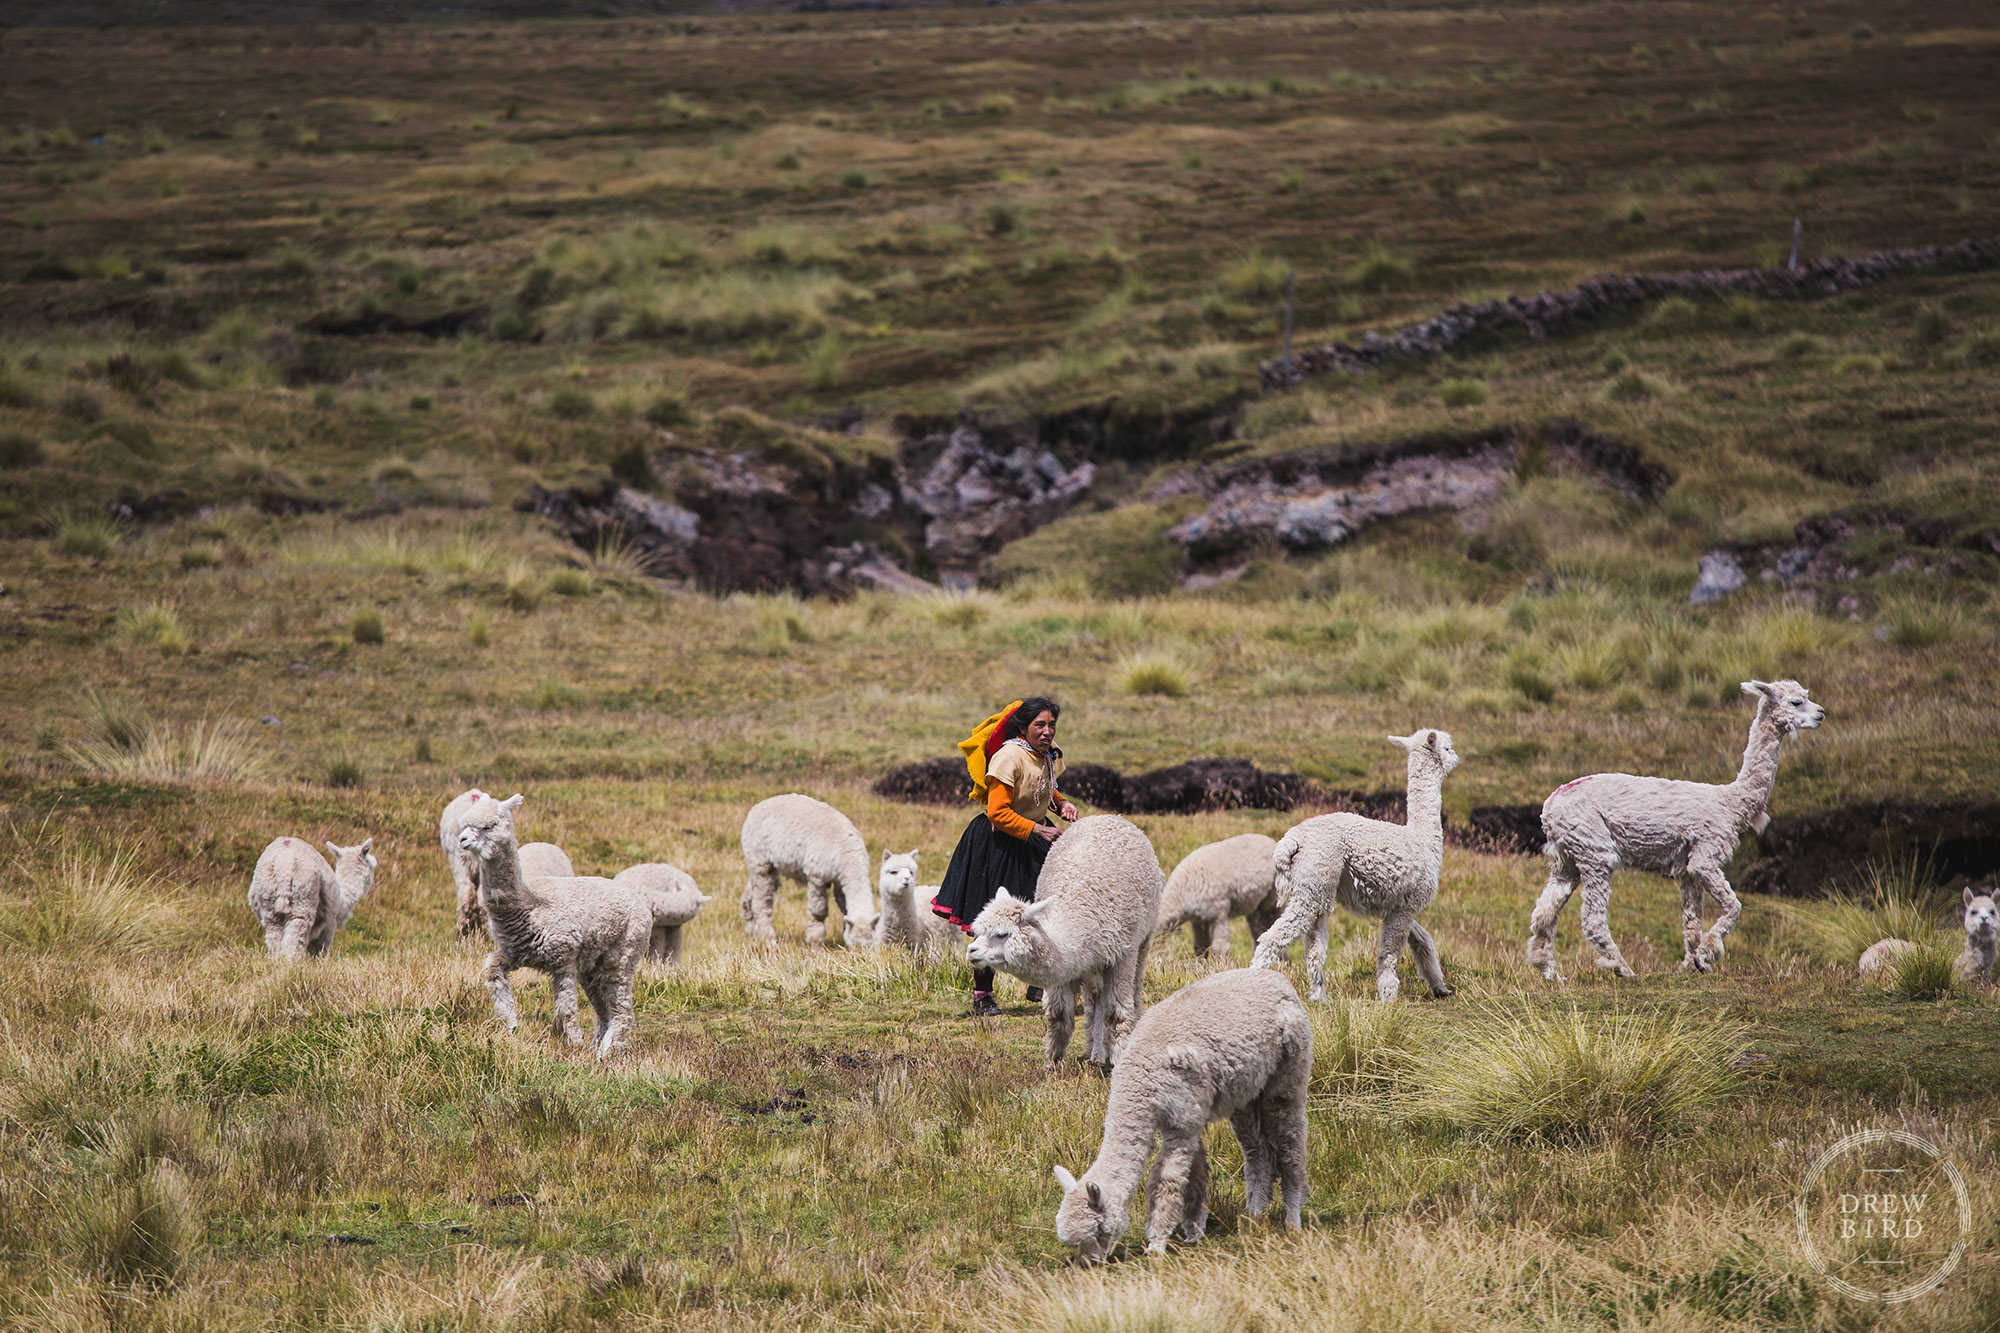 A young woman alpaca farmer runs across a high mountain field among her herd of alpacas near the Ausangate Glacier in the Andes Mountains of Peru. An editorial and travel photo project about climate change and glaciers. Climate change stories.